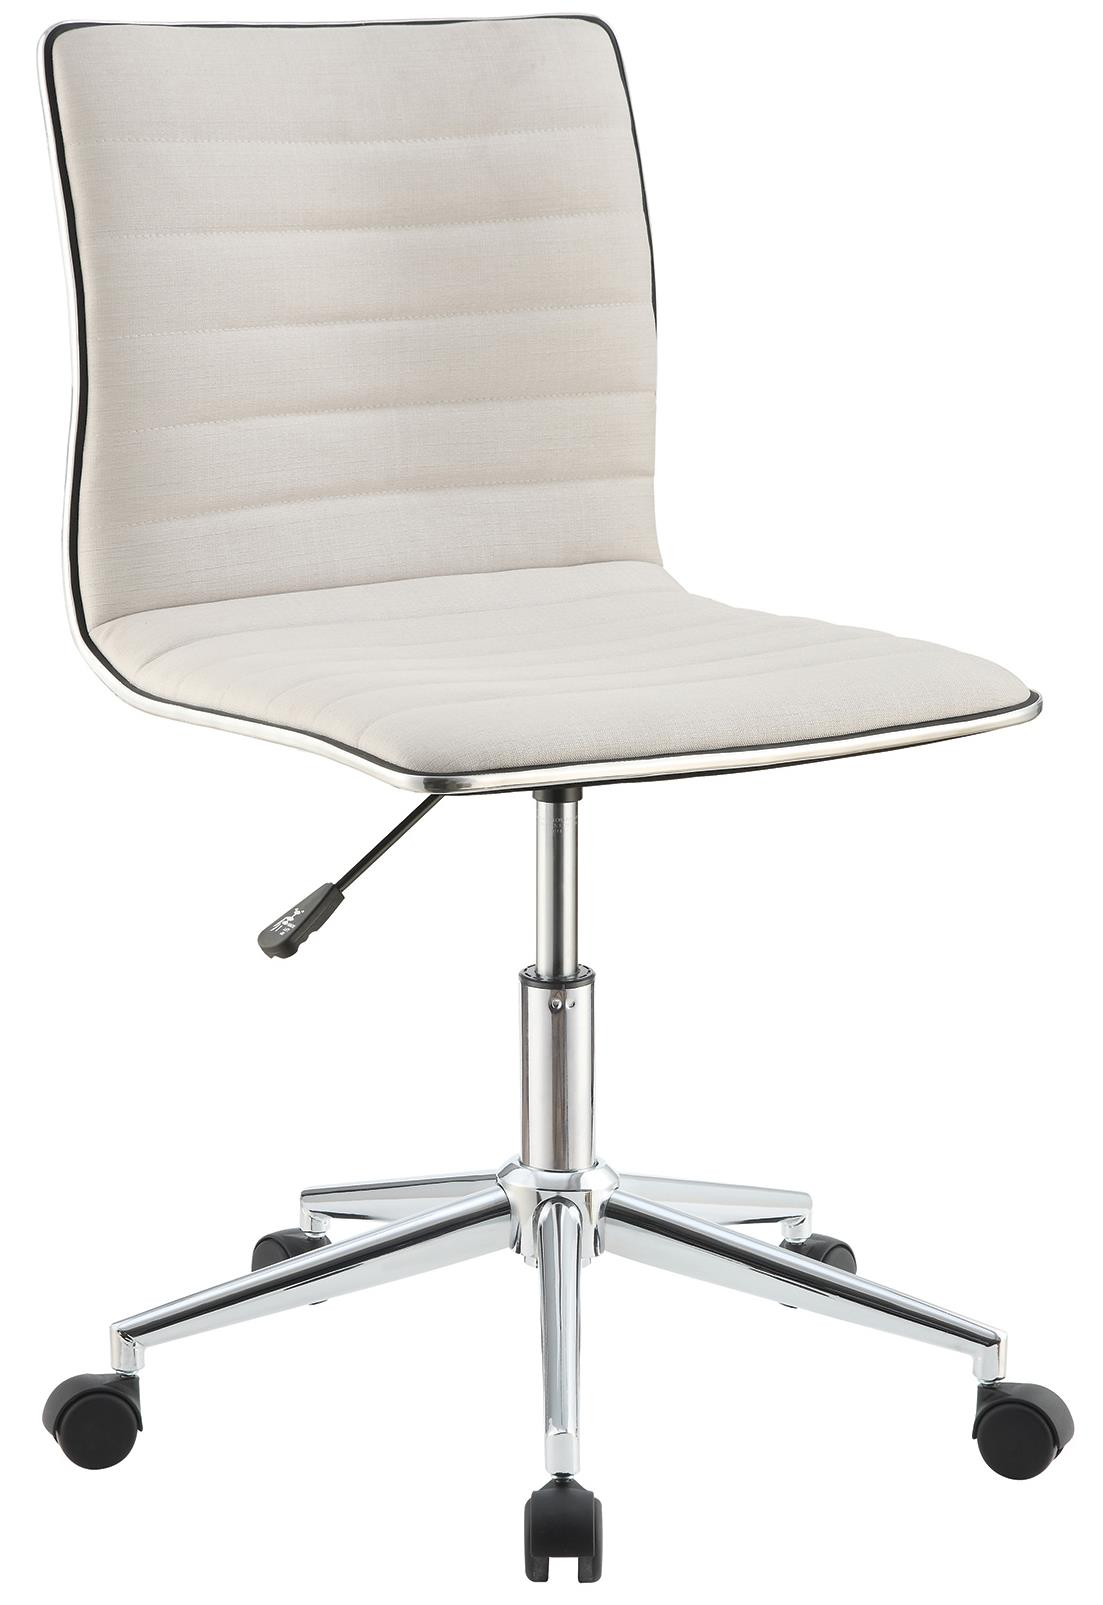 Coaster Office Chairs 800726 Sleek Office Chair With